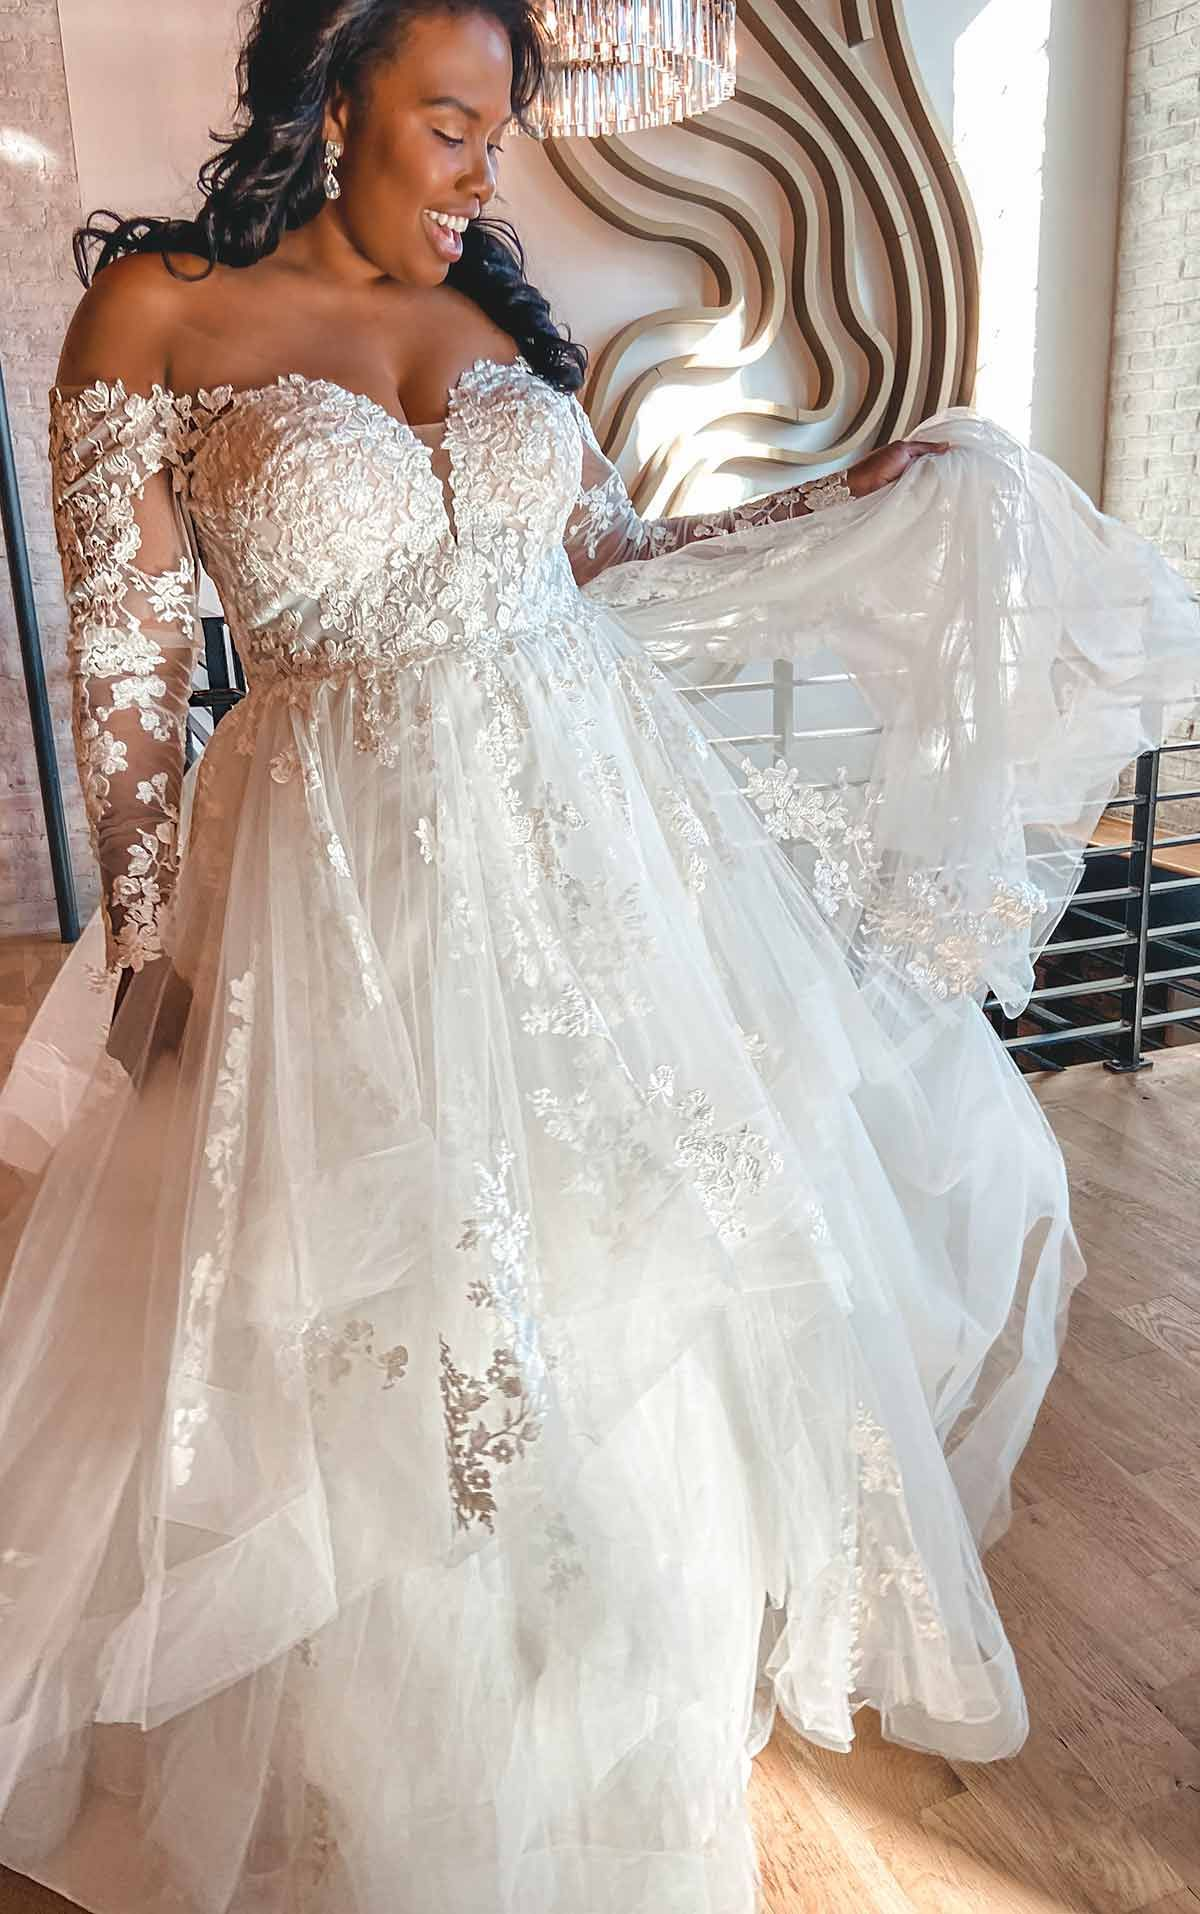 Off Shoulder Long Sleeve Lace Plus Size Ballgown With Tiered Skirt In 2020 Essense Of Australia Wedding Dresses Ball Gowns Ball Gown Wedding Dress [ 1914 x 1200 Pixel ]